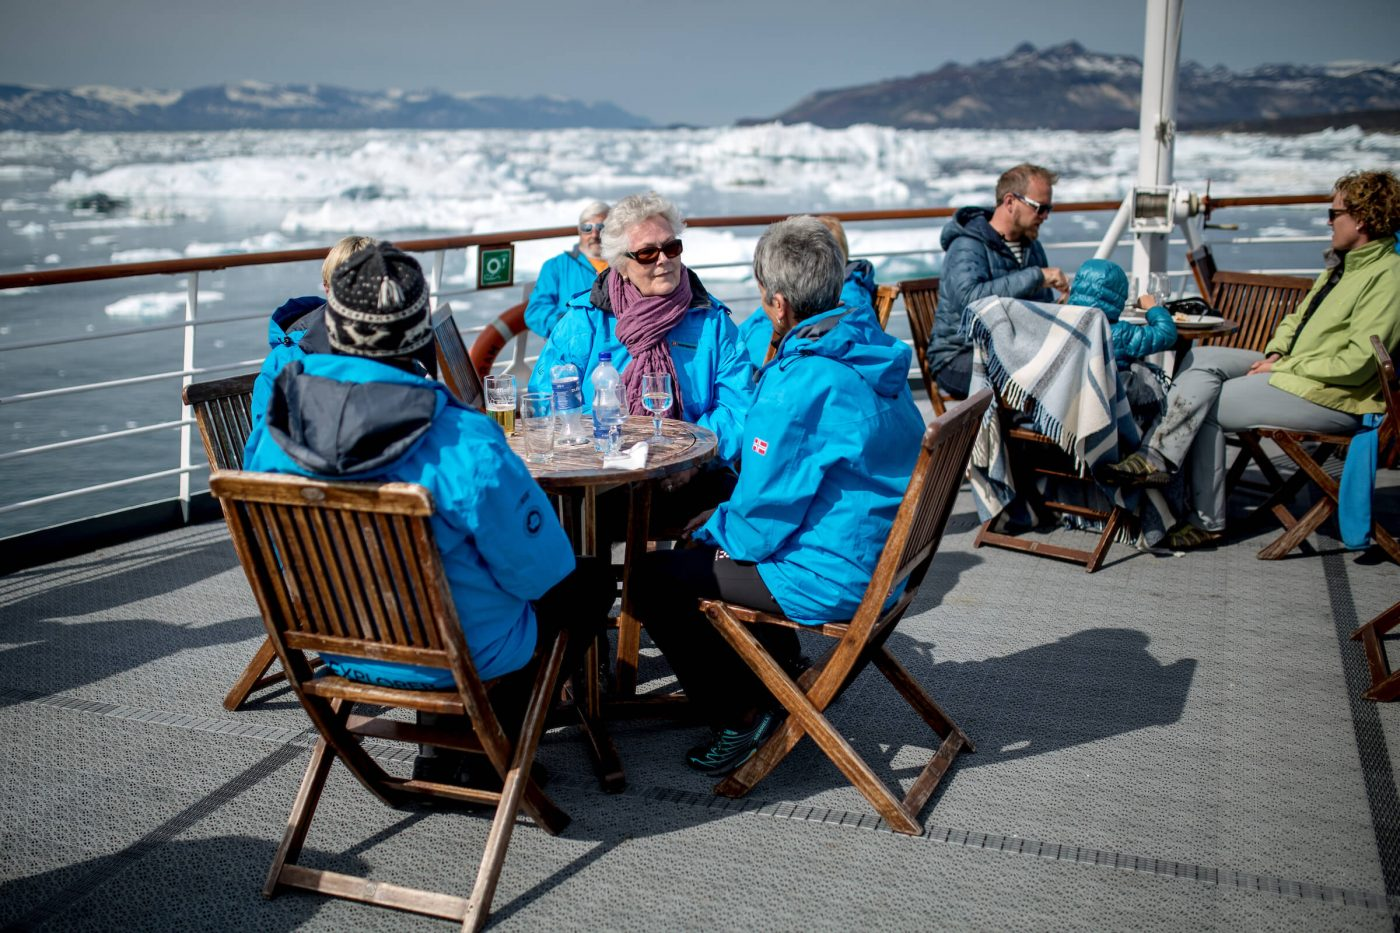 Cruise guests having lunch on the upper deck of MS Fram in the Disko Bay in Greenland. Photo by Mads Pihl